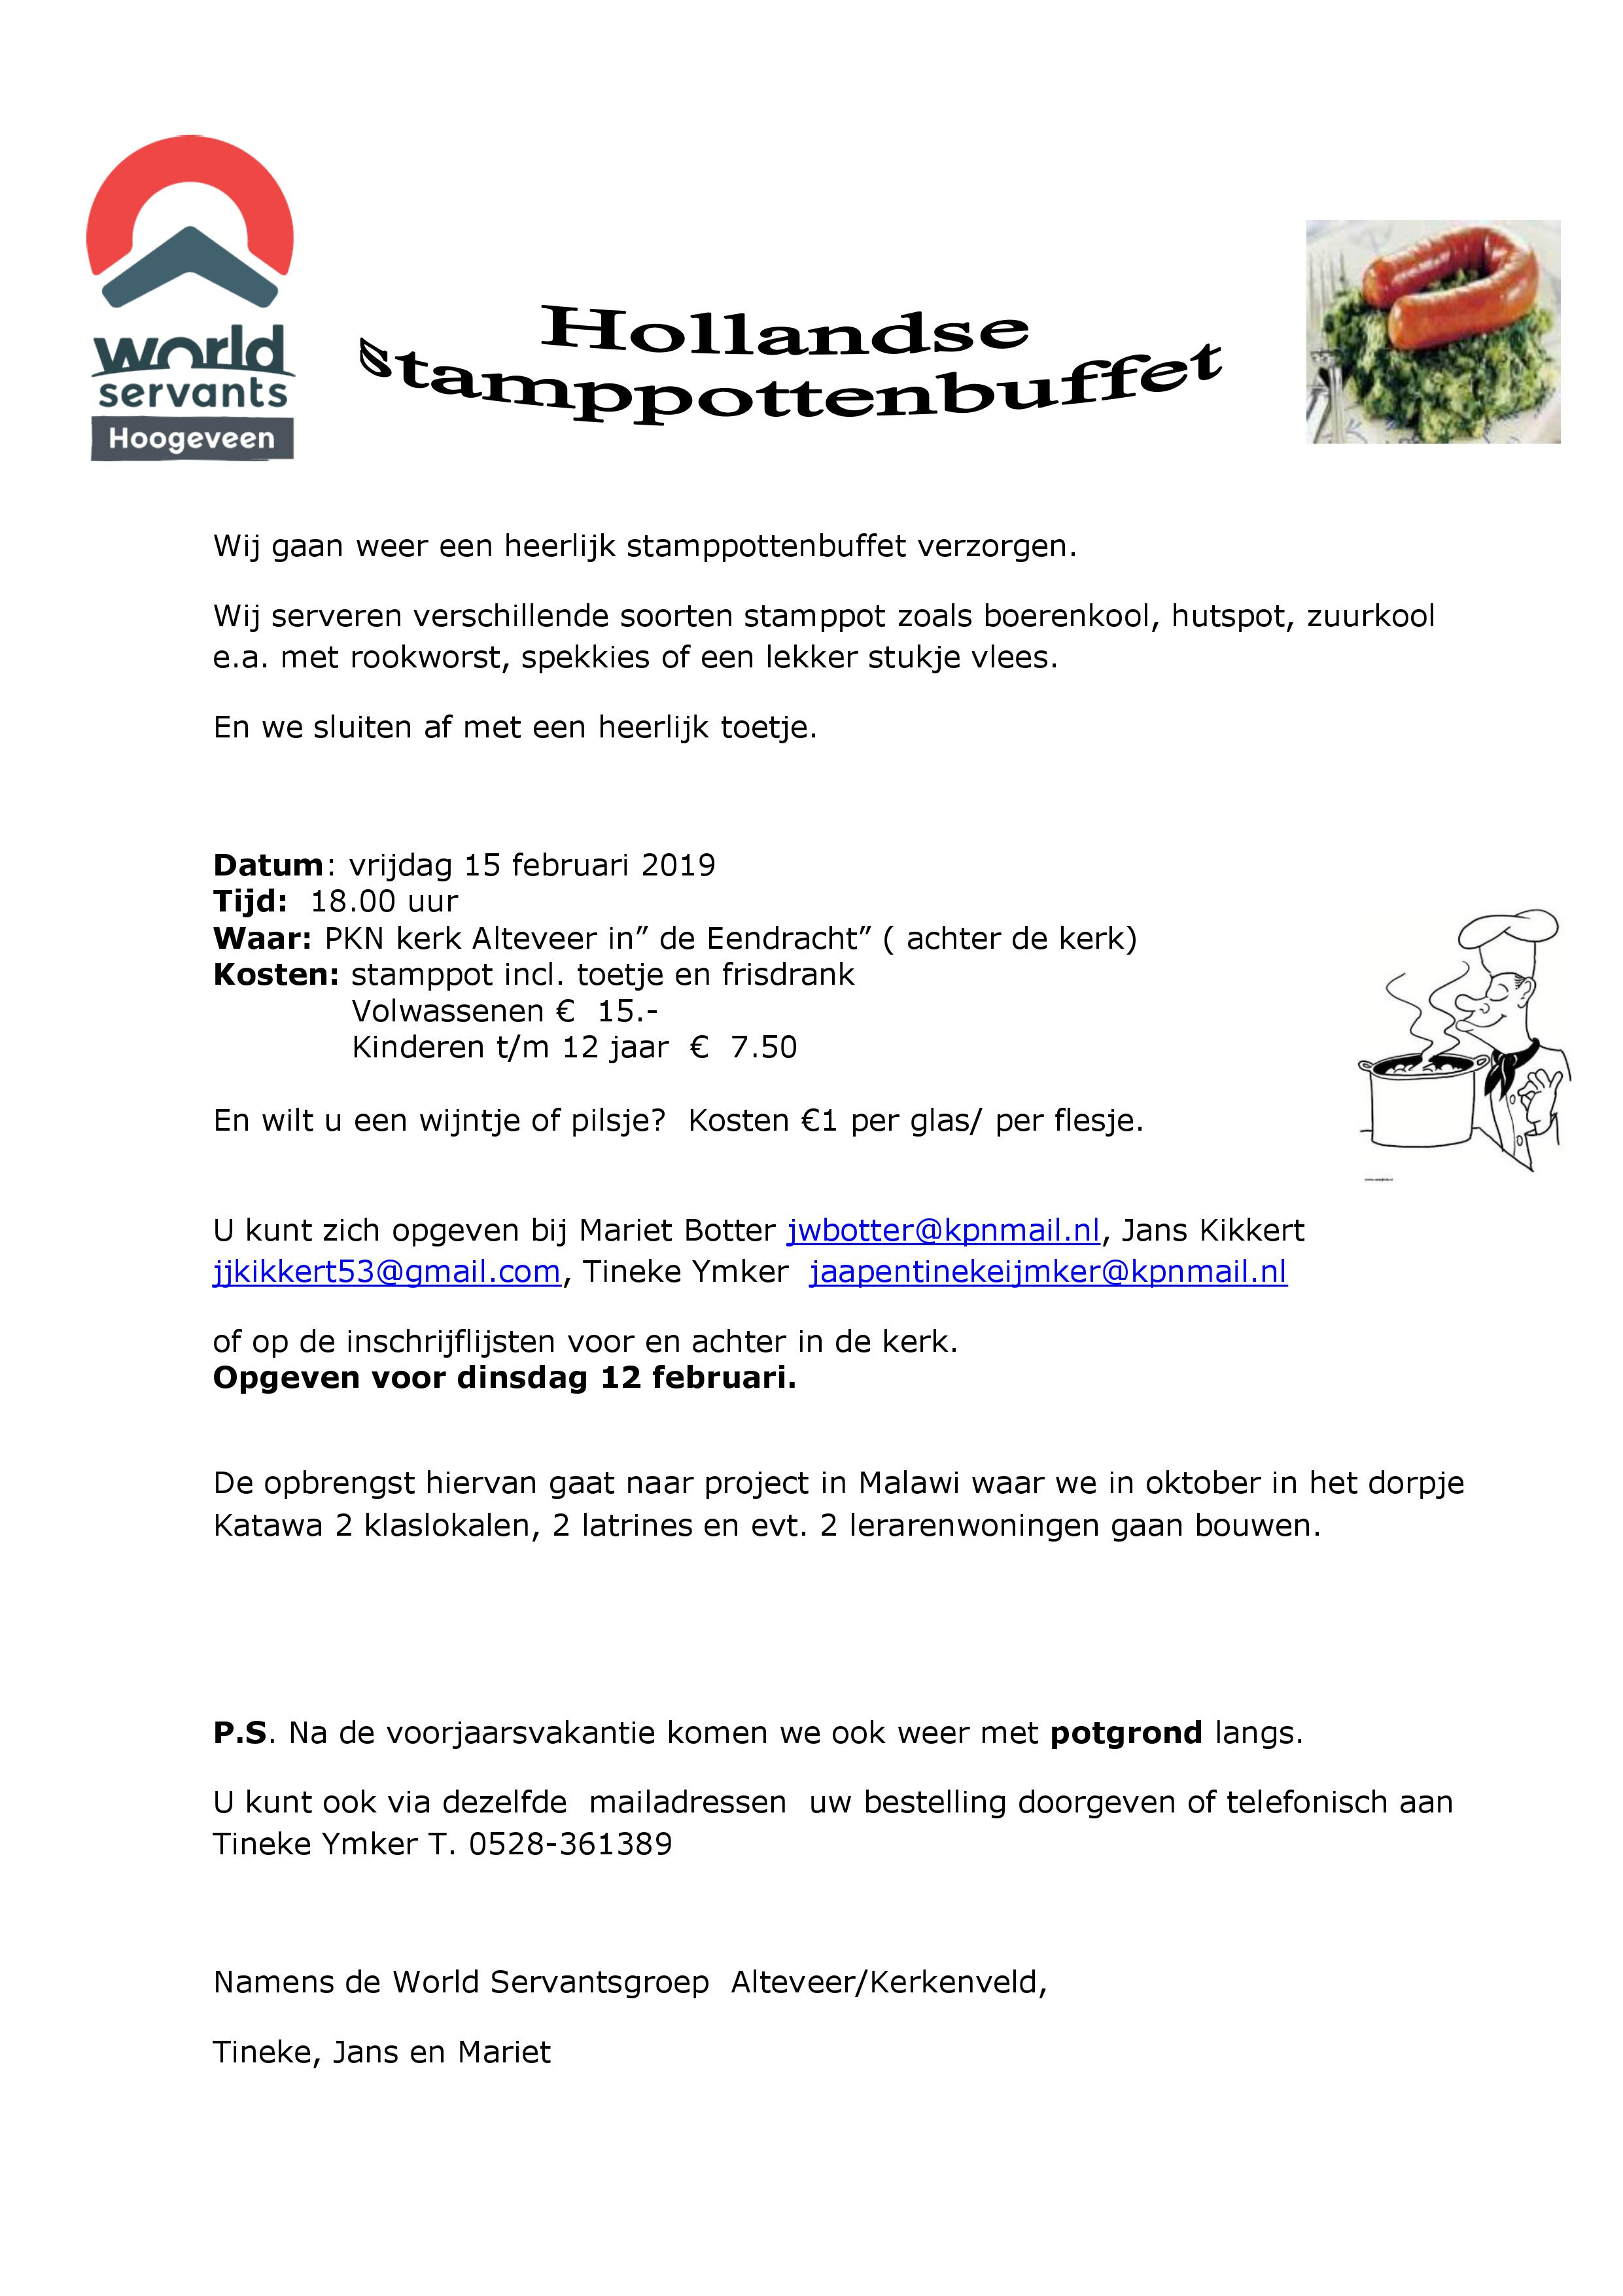 Hollandse stamppottenbuffet t.b.v. World Servants